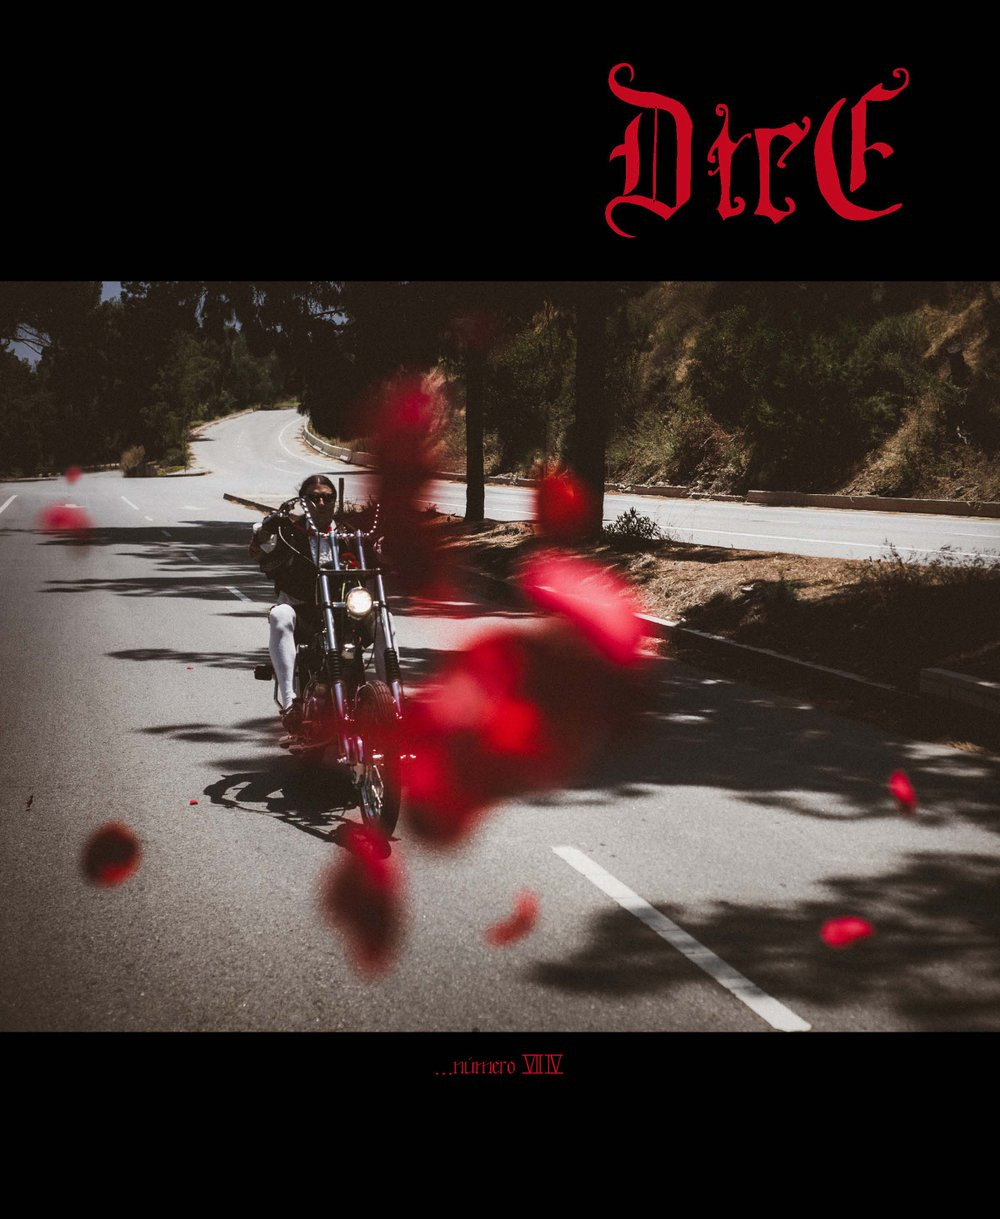 DicE Magazine issue 74 filled with chopper motorcycle culture, stories, and builder lifestyle.